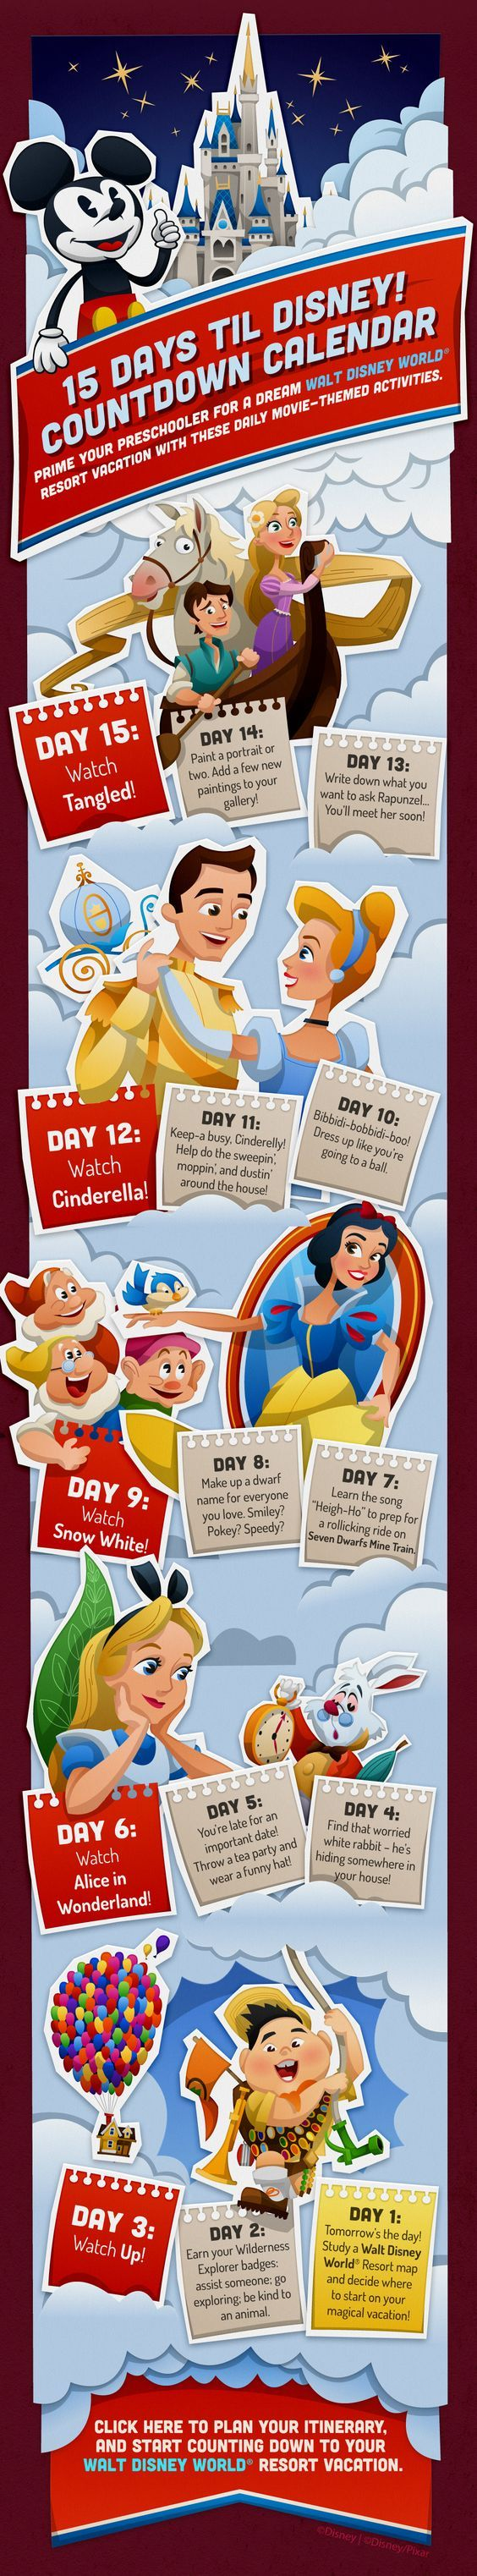 This is a handy dandy countdown calendar for your next Walt Disney World vacation.  Our Laughing Place Travel is here to help plan your vacation from the start because at OLP Travel we put the Pixie Dust in Concierge Service!  #olptravel